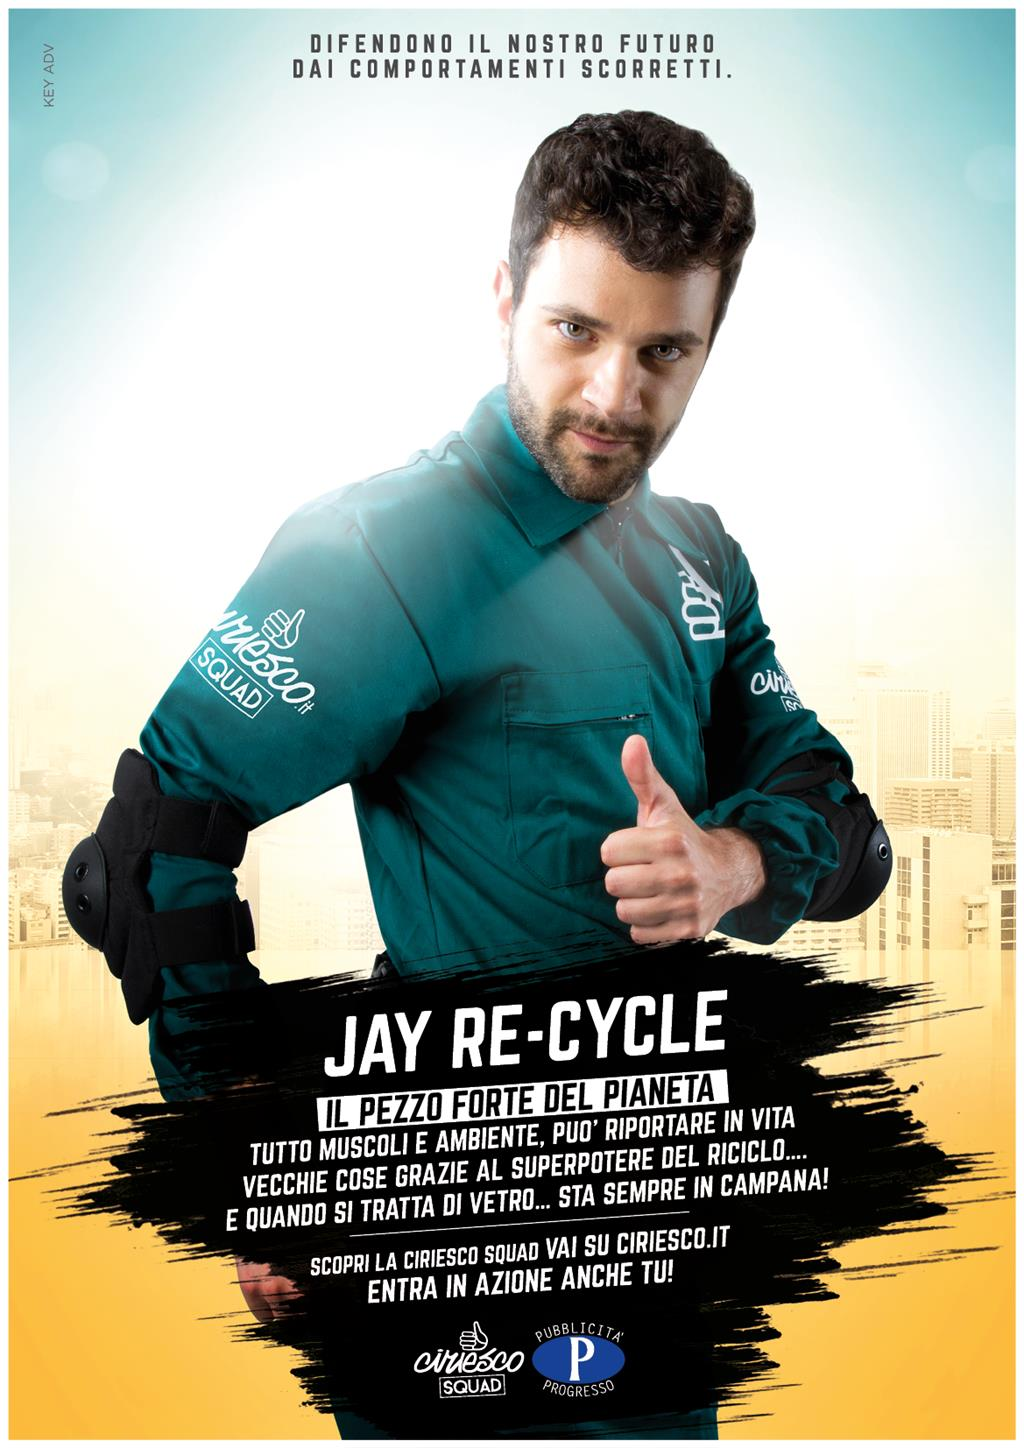 Jay Re-Cycle